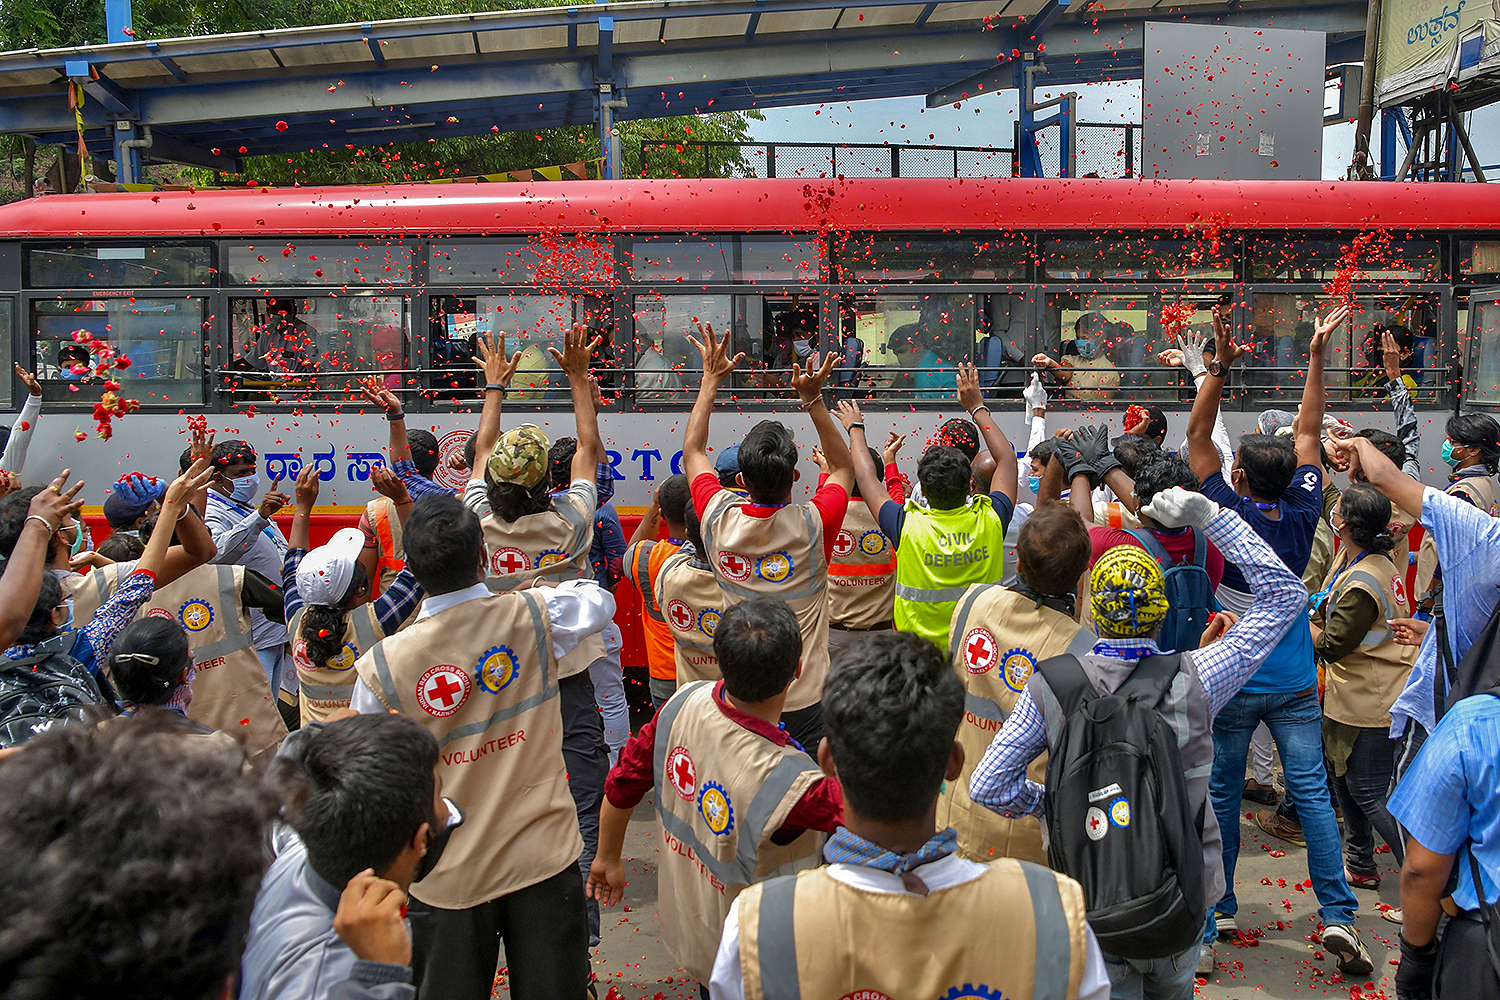 Volunteers with the Indian Red Cross and other nongovernmental organizations in Bangalore throw flower petals on a bus transporting migrant workers and families to their hometowns after the government eased a nationwide lockdown May 7. MANJUNATH KIRAN/AFP via Getty Images